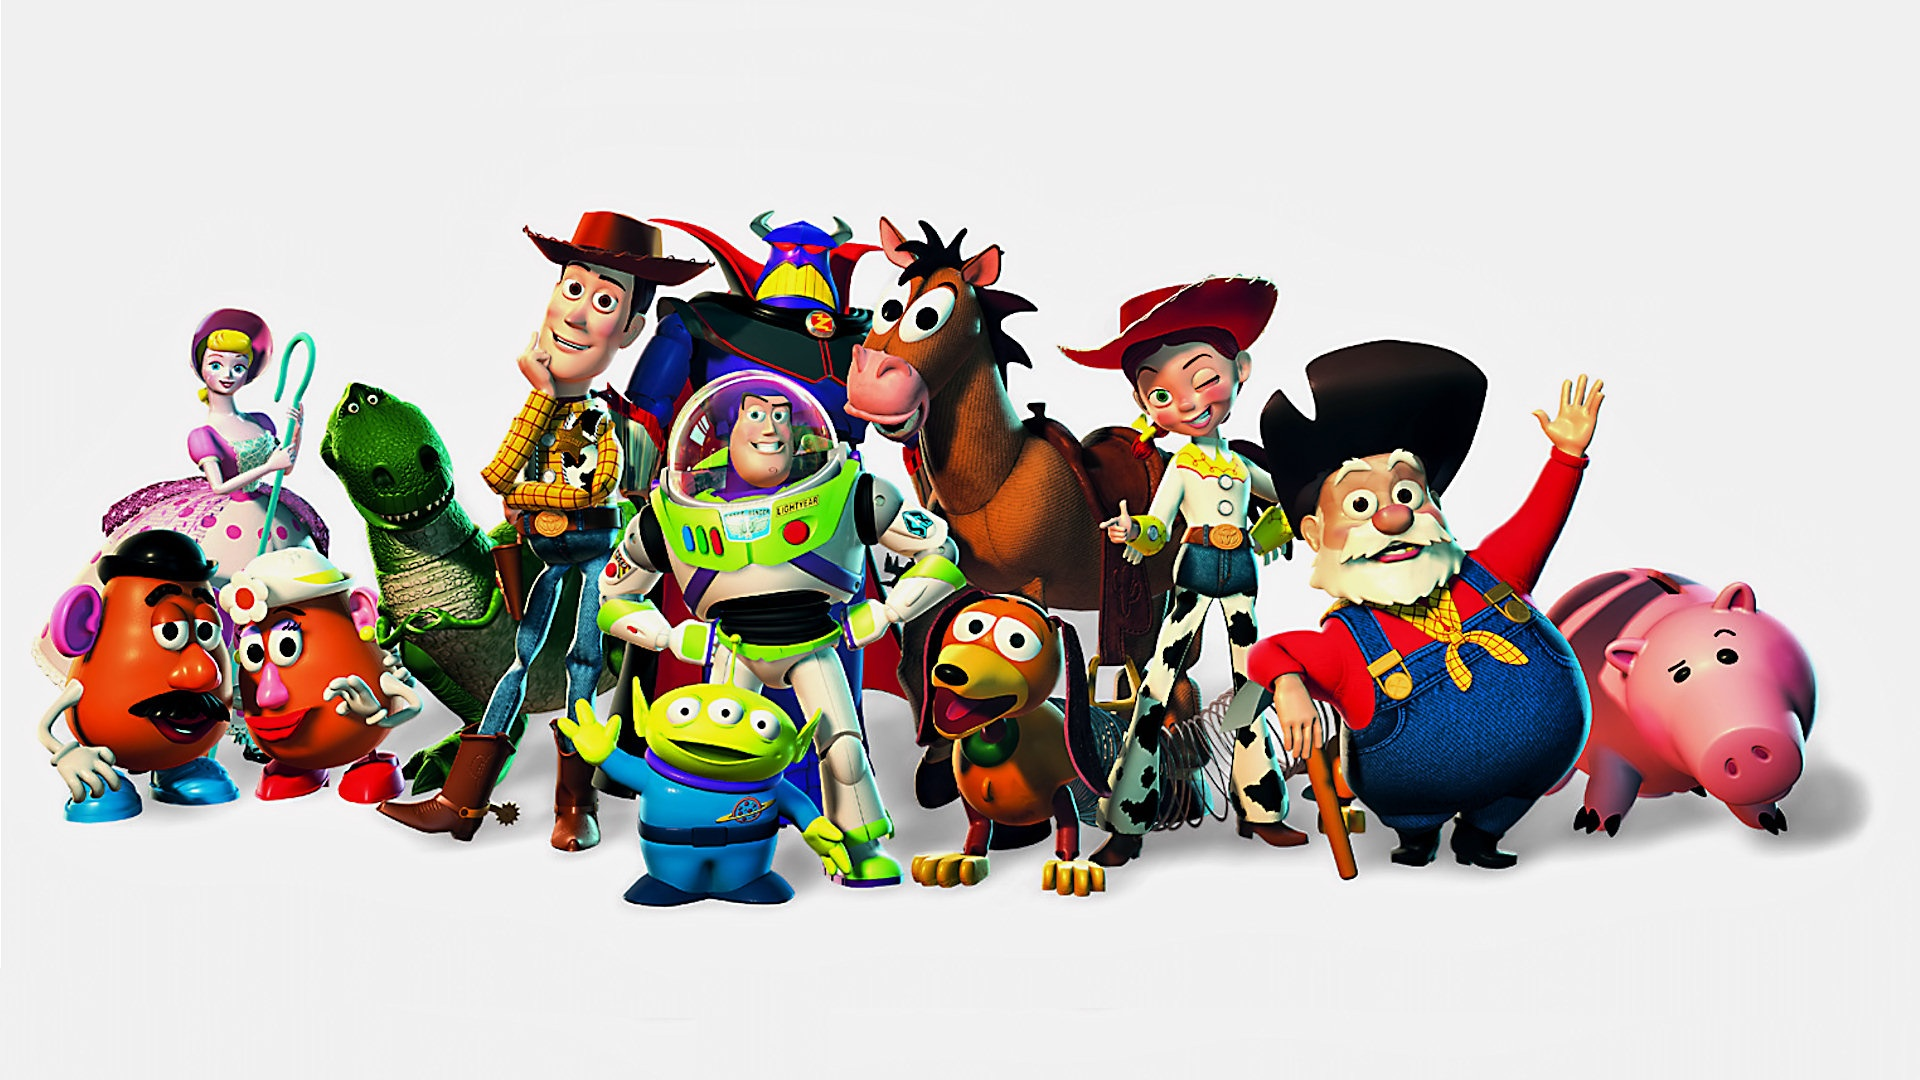 Toy story 1 2 3 wallpapers hd 1920x1080 backgrounds 1920x1080